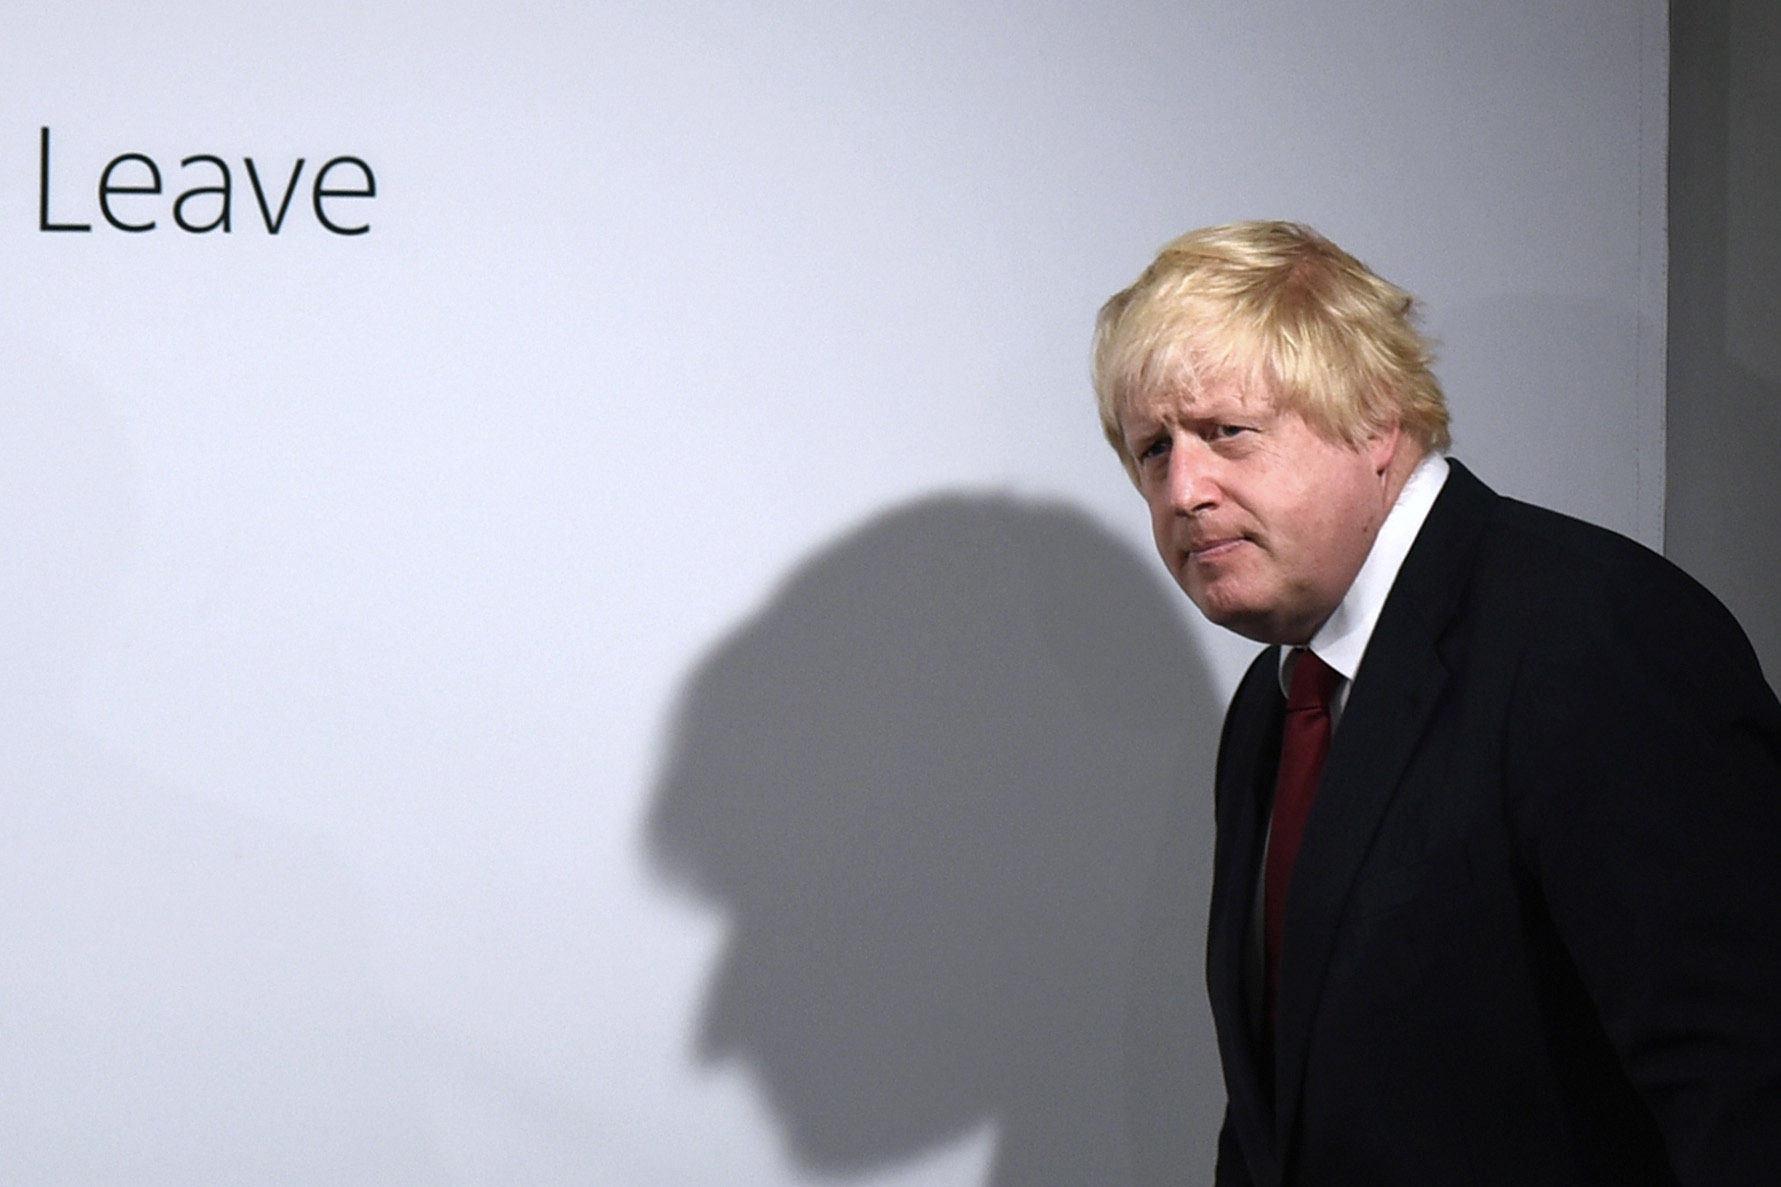 Boris Johnson holds a press conference at Brexit HQ in Westminster, London, after David Cameron has announced he will quit as Prime Minister by October following a humiliating defeat in the referendum which ended with a vote for Britain to leave the Europ